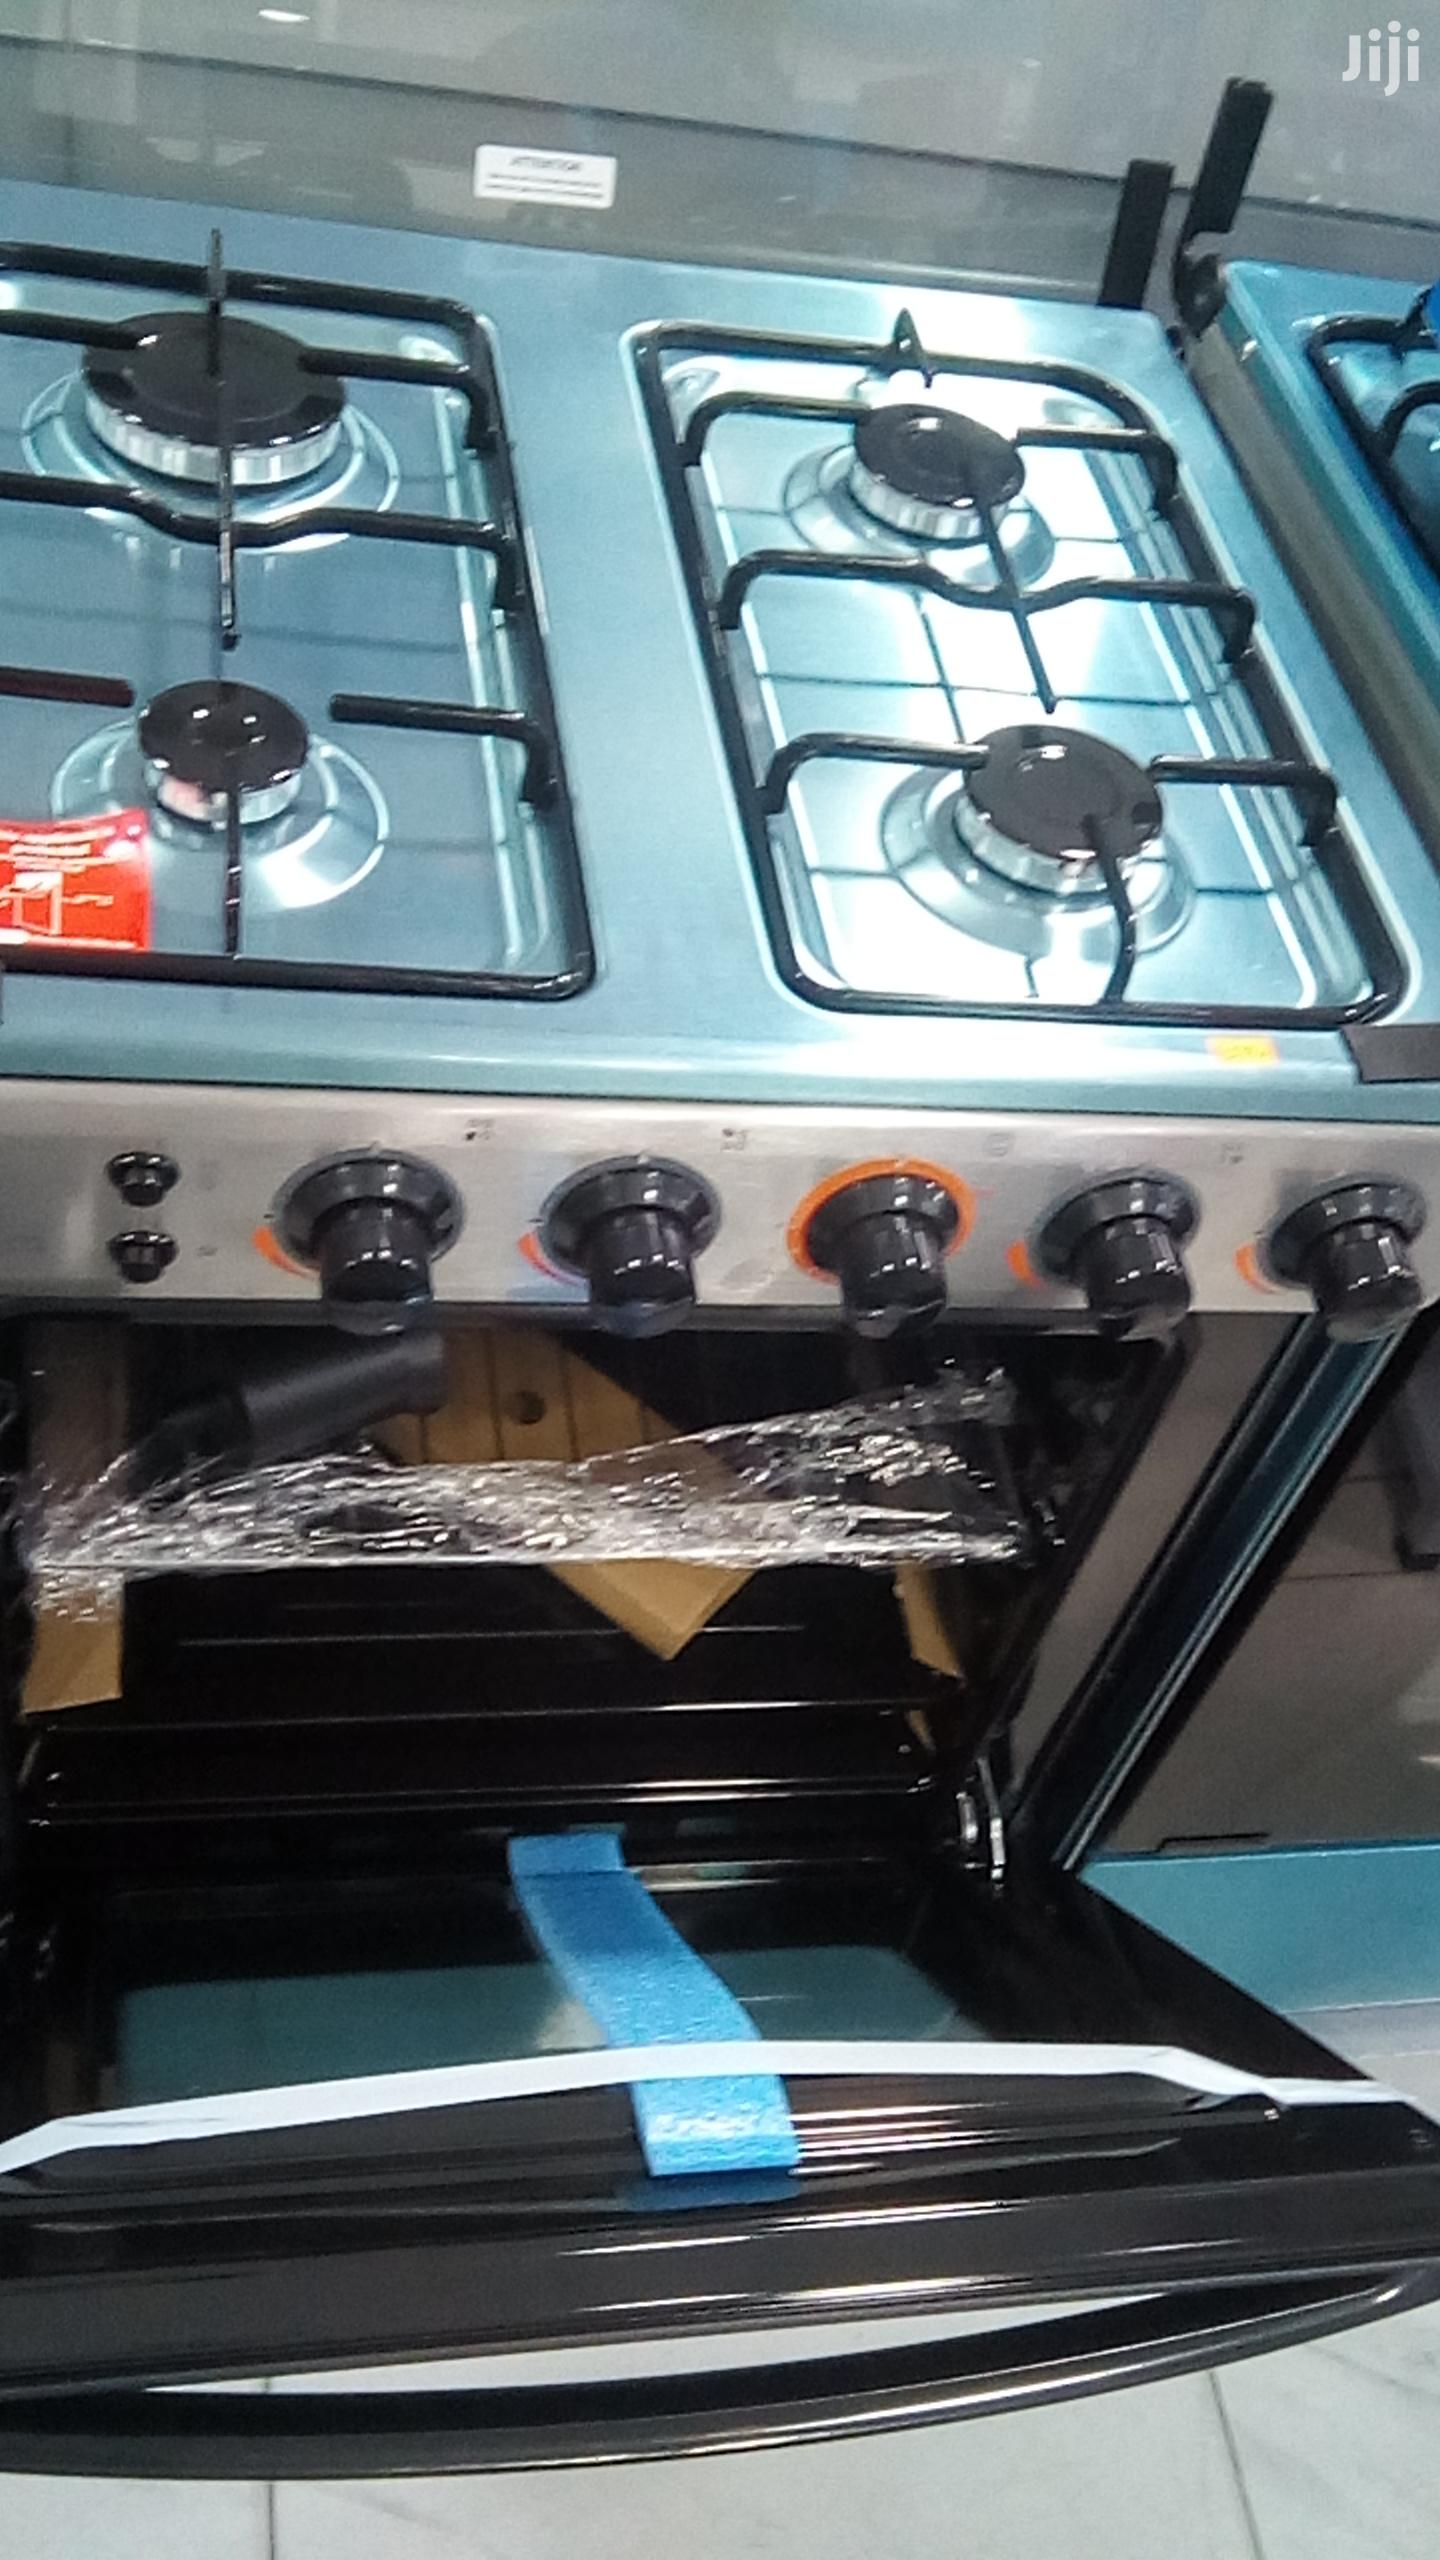 Nasco 4 Burner With Oven And Grill | Kitchen Appliances for sale in Kokomlemle, Greater Accra, Ghana